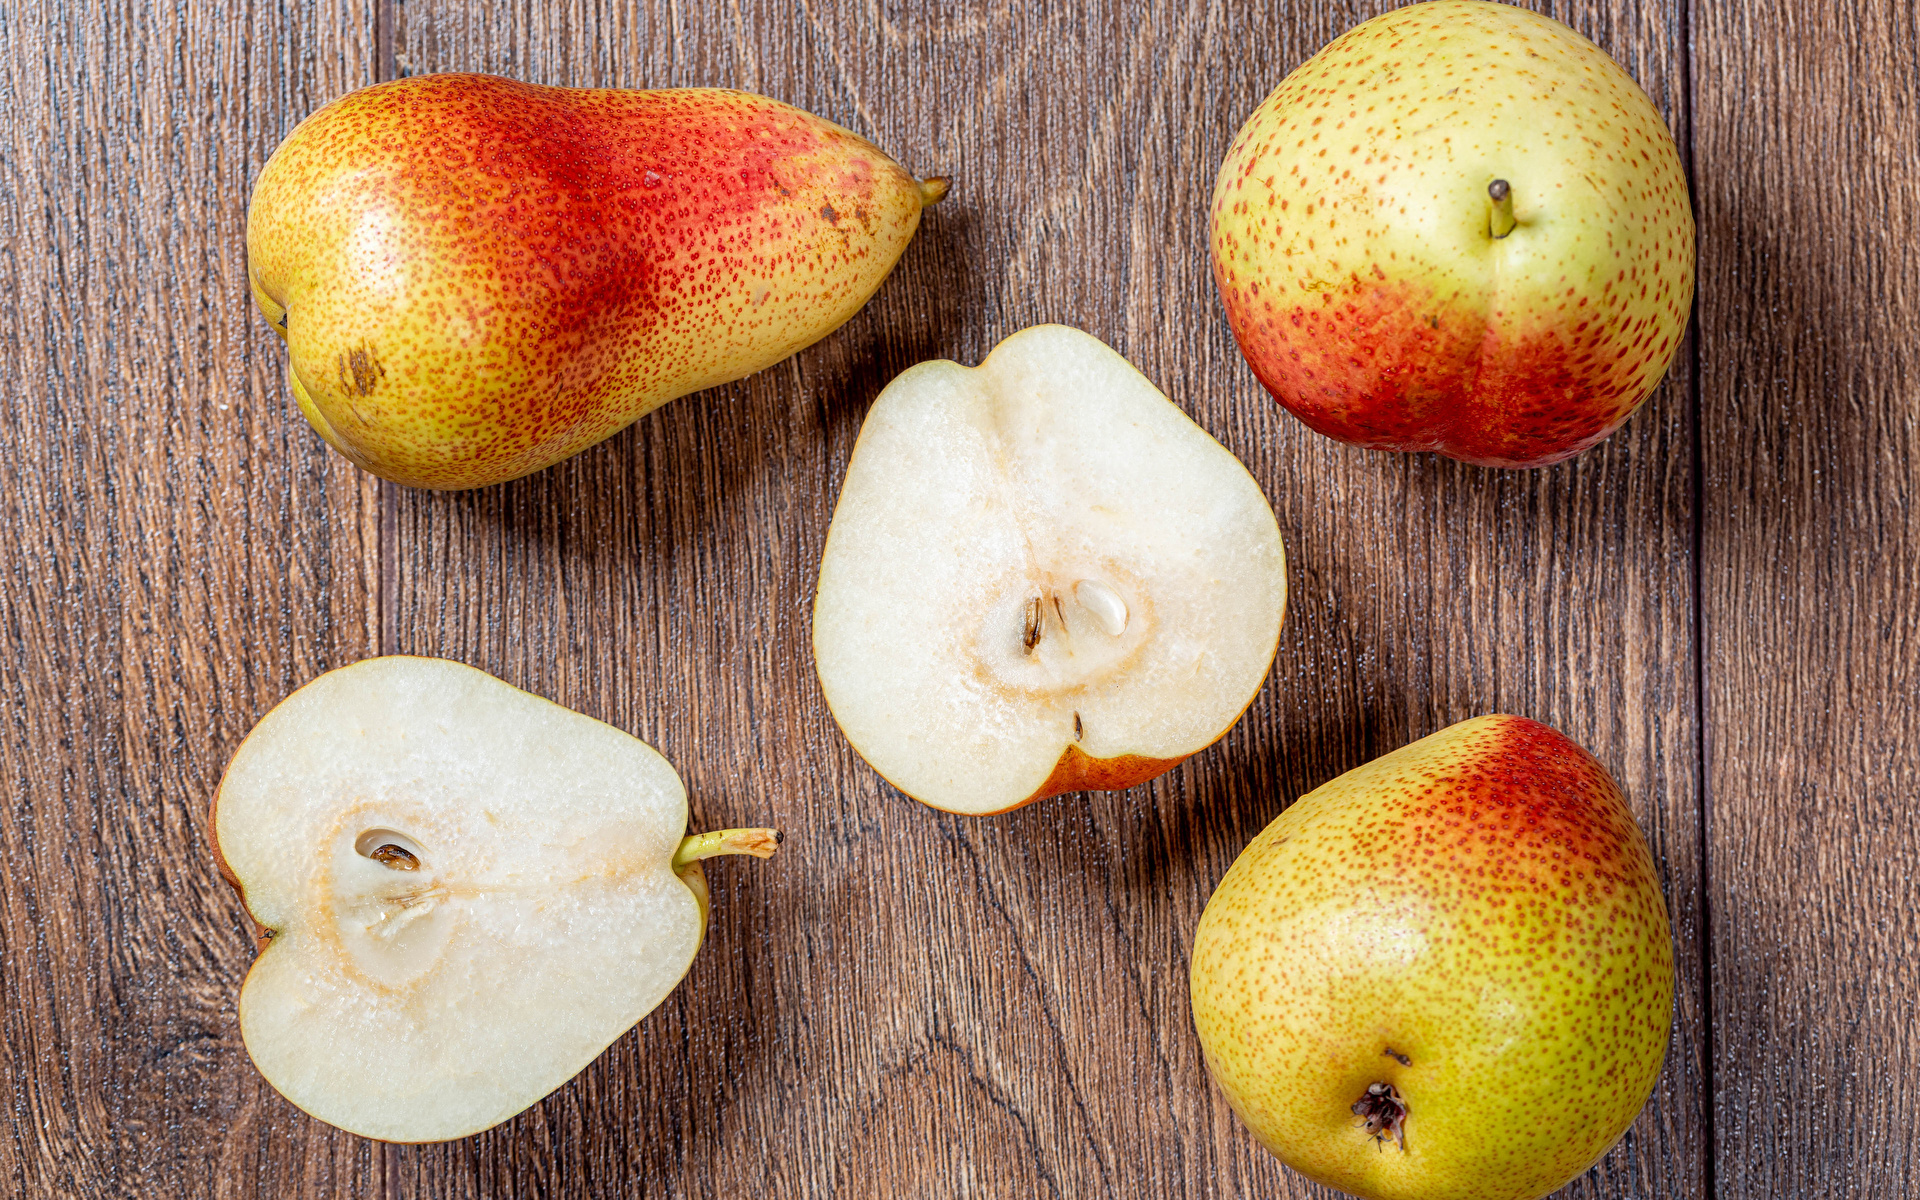 Picture Pears Food boards 1920x1200 Wood planks